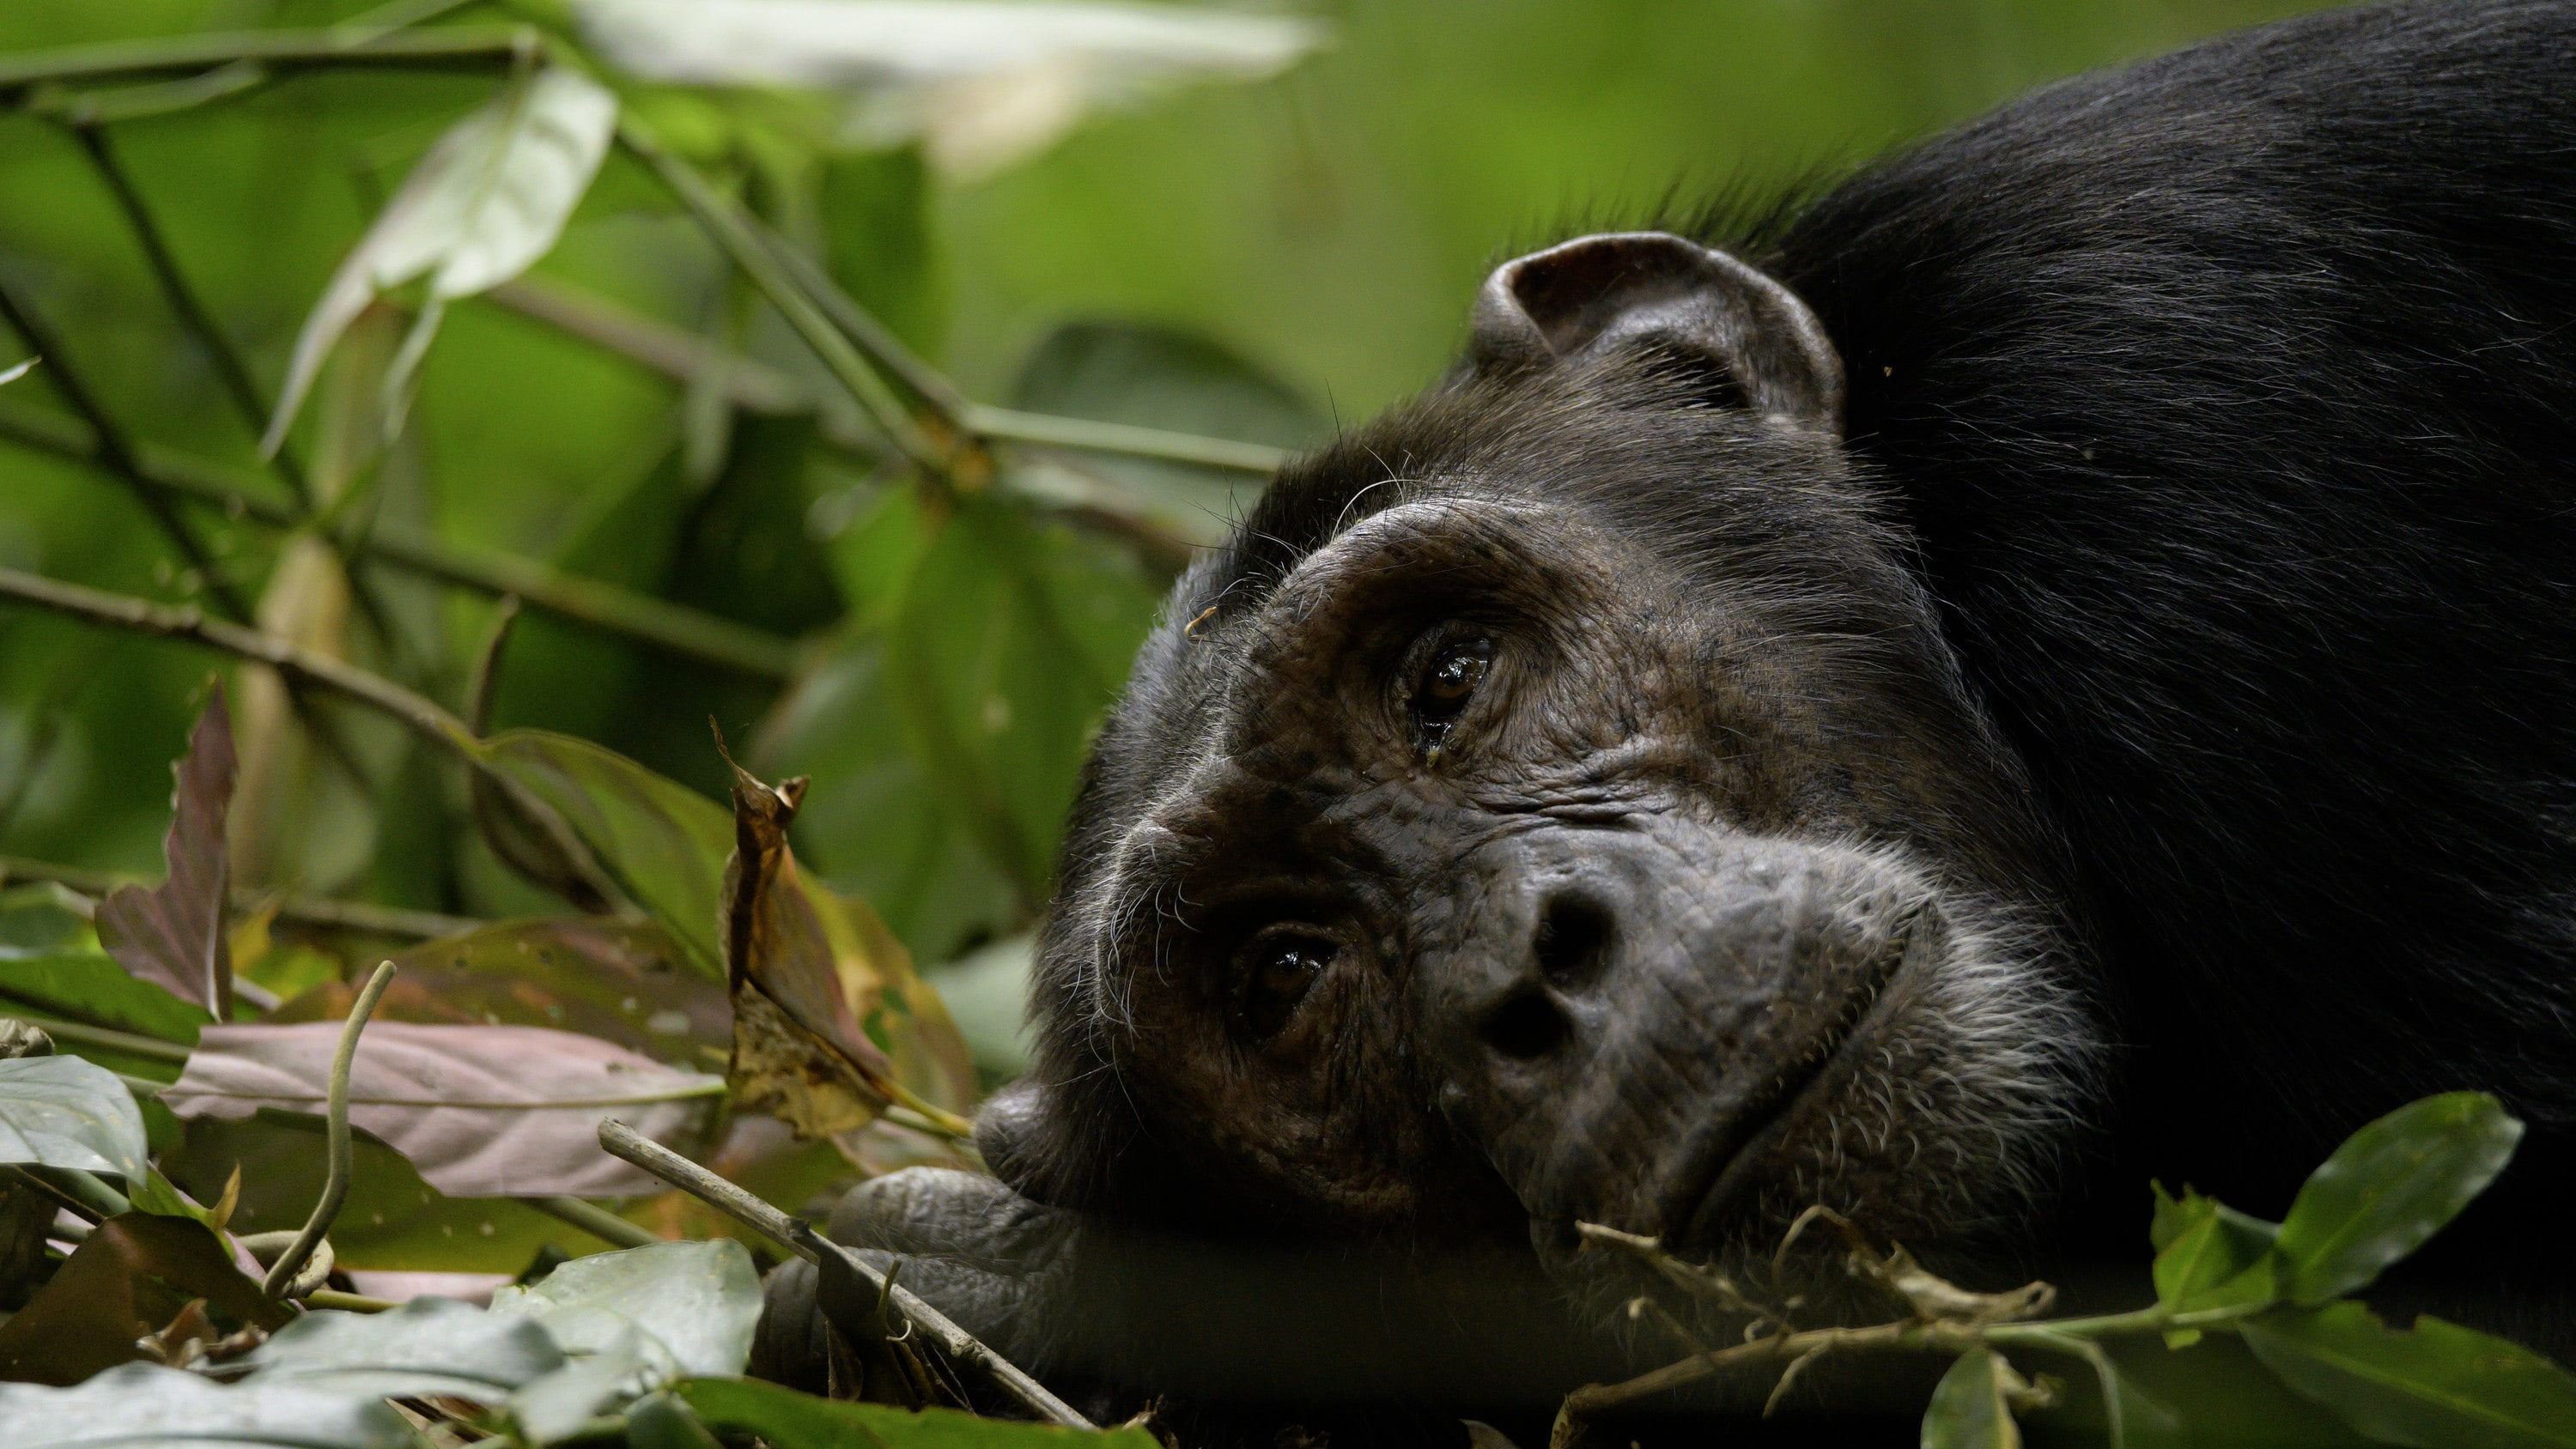 An adult chimp lying on the ground. (National Geographic for Disney+/Dominic Weston)